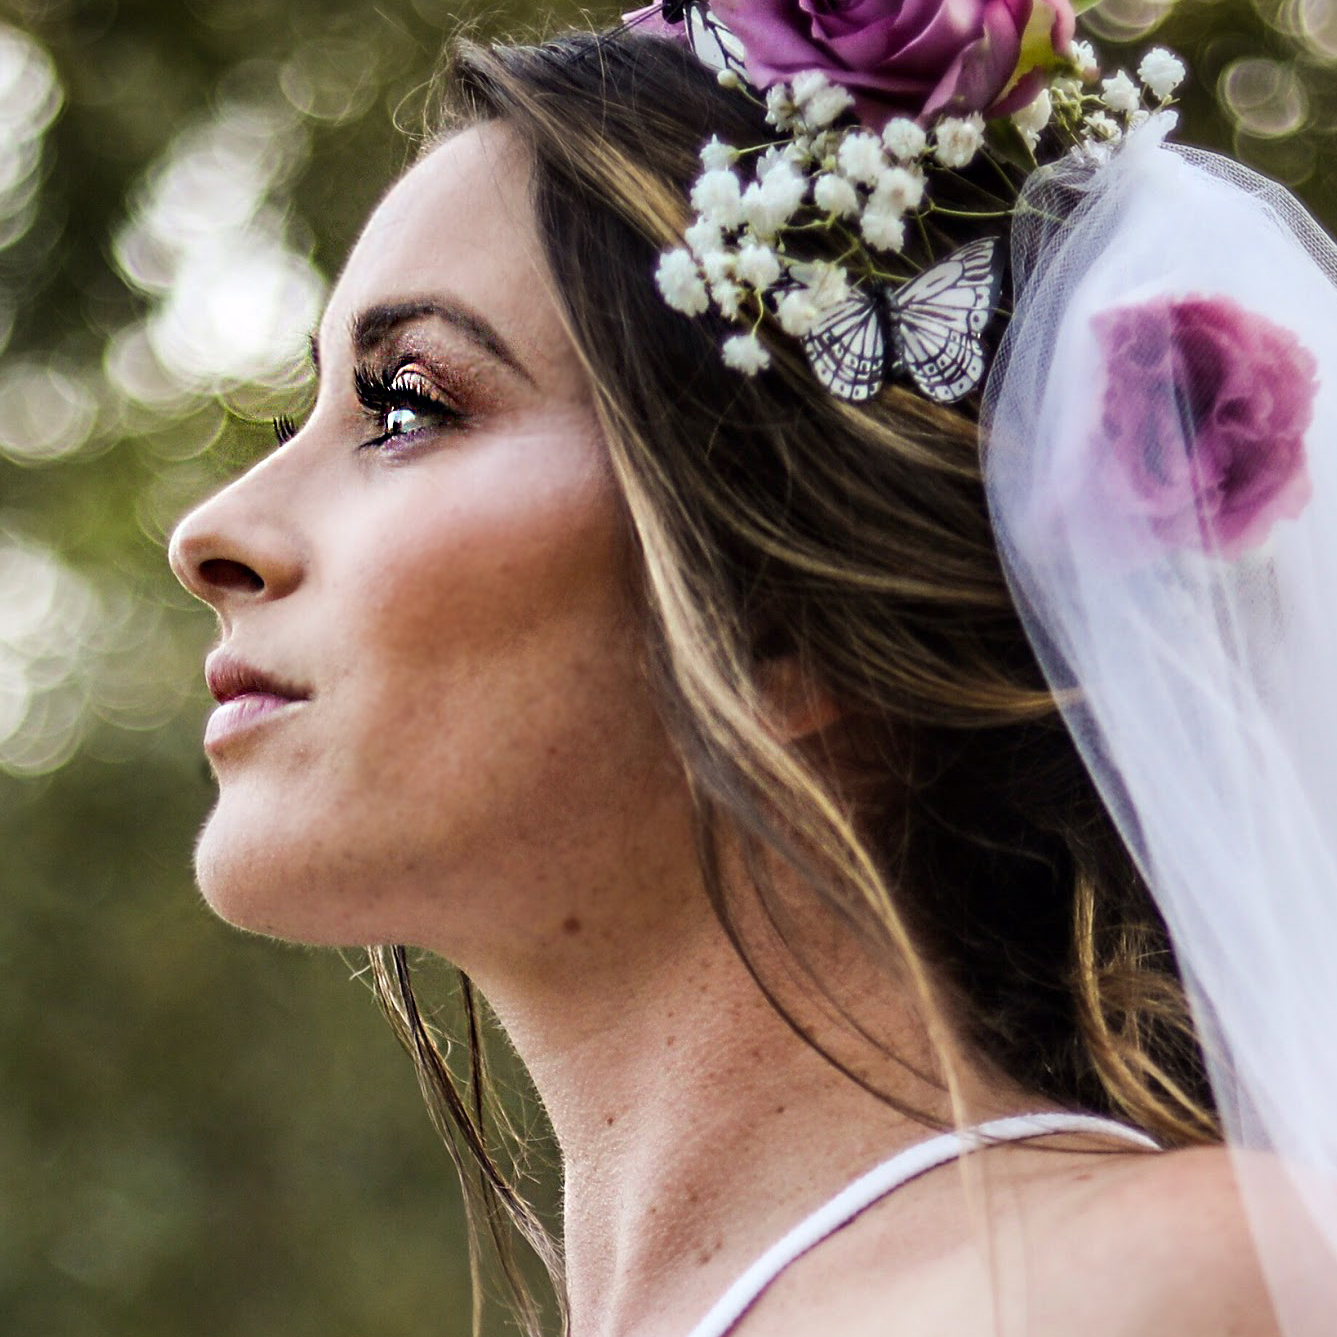 Natural Wedding Makeup for Boho Bride by Ventura Wedding Makeup Artist Glory Munoz